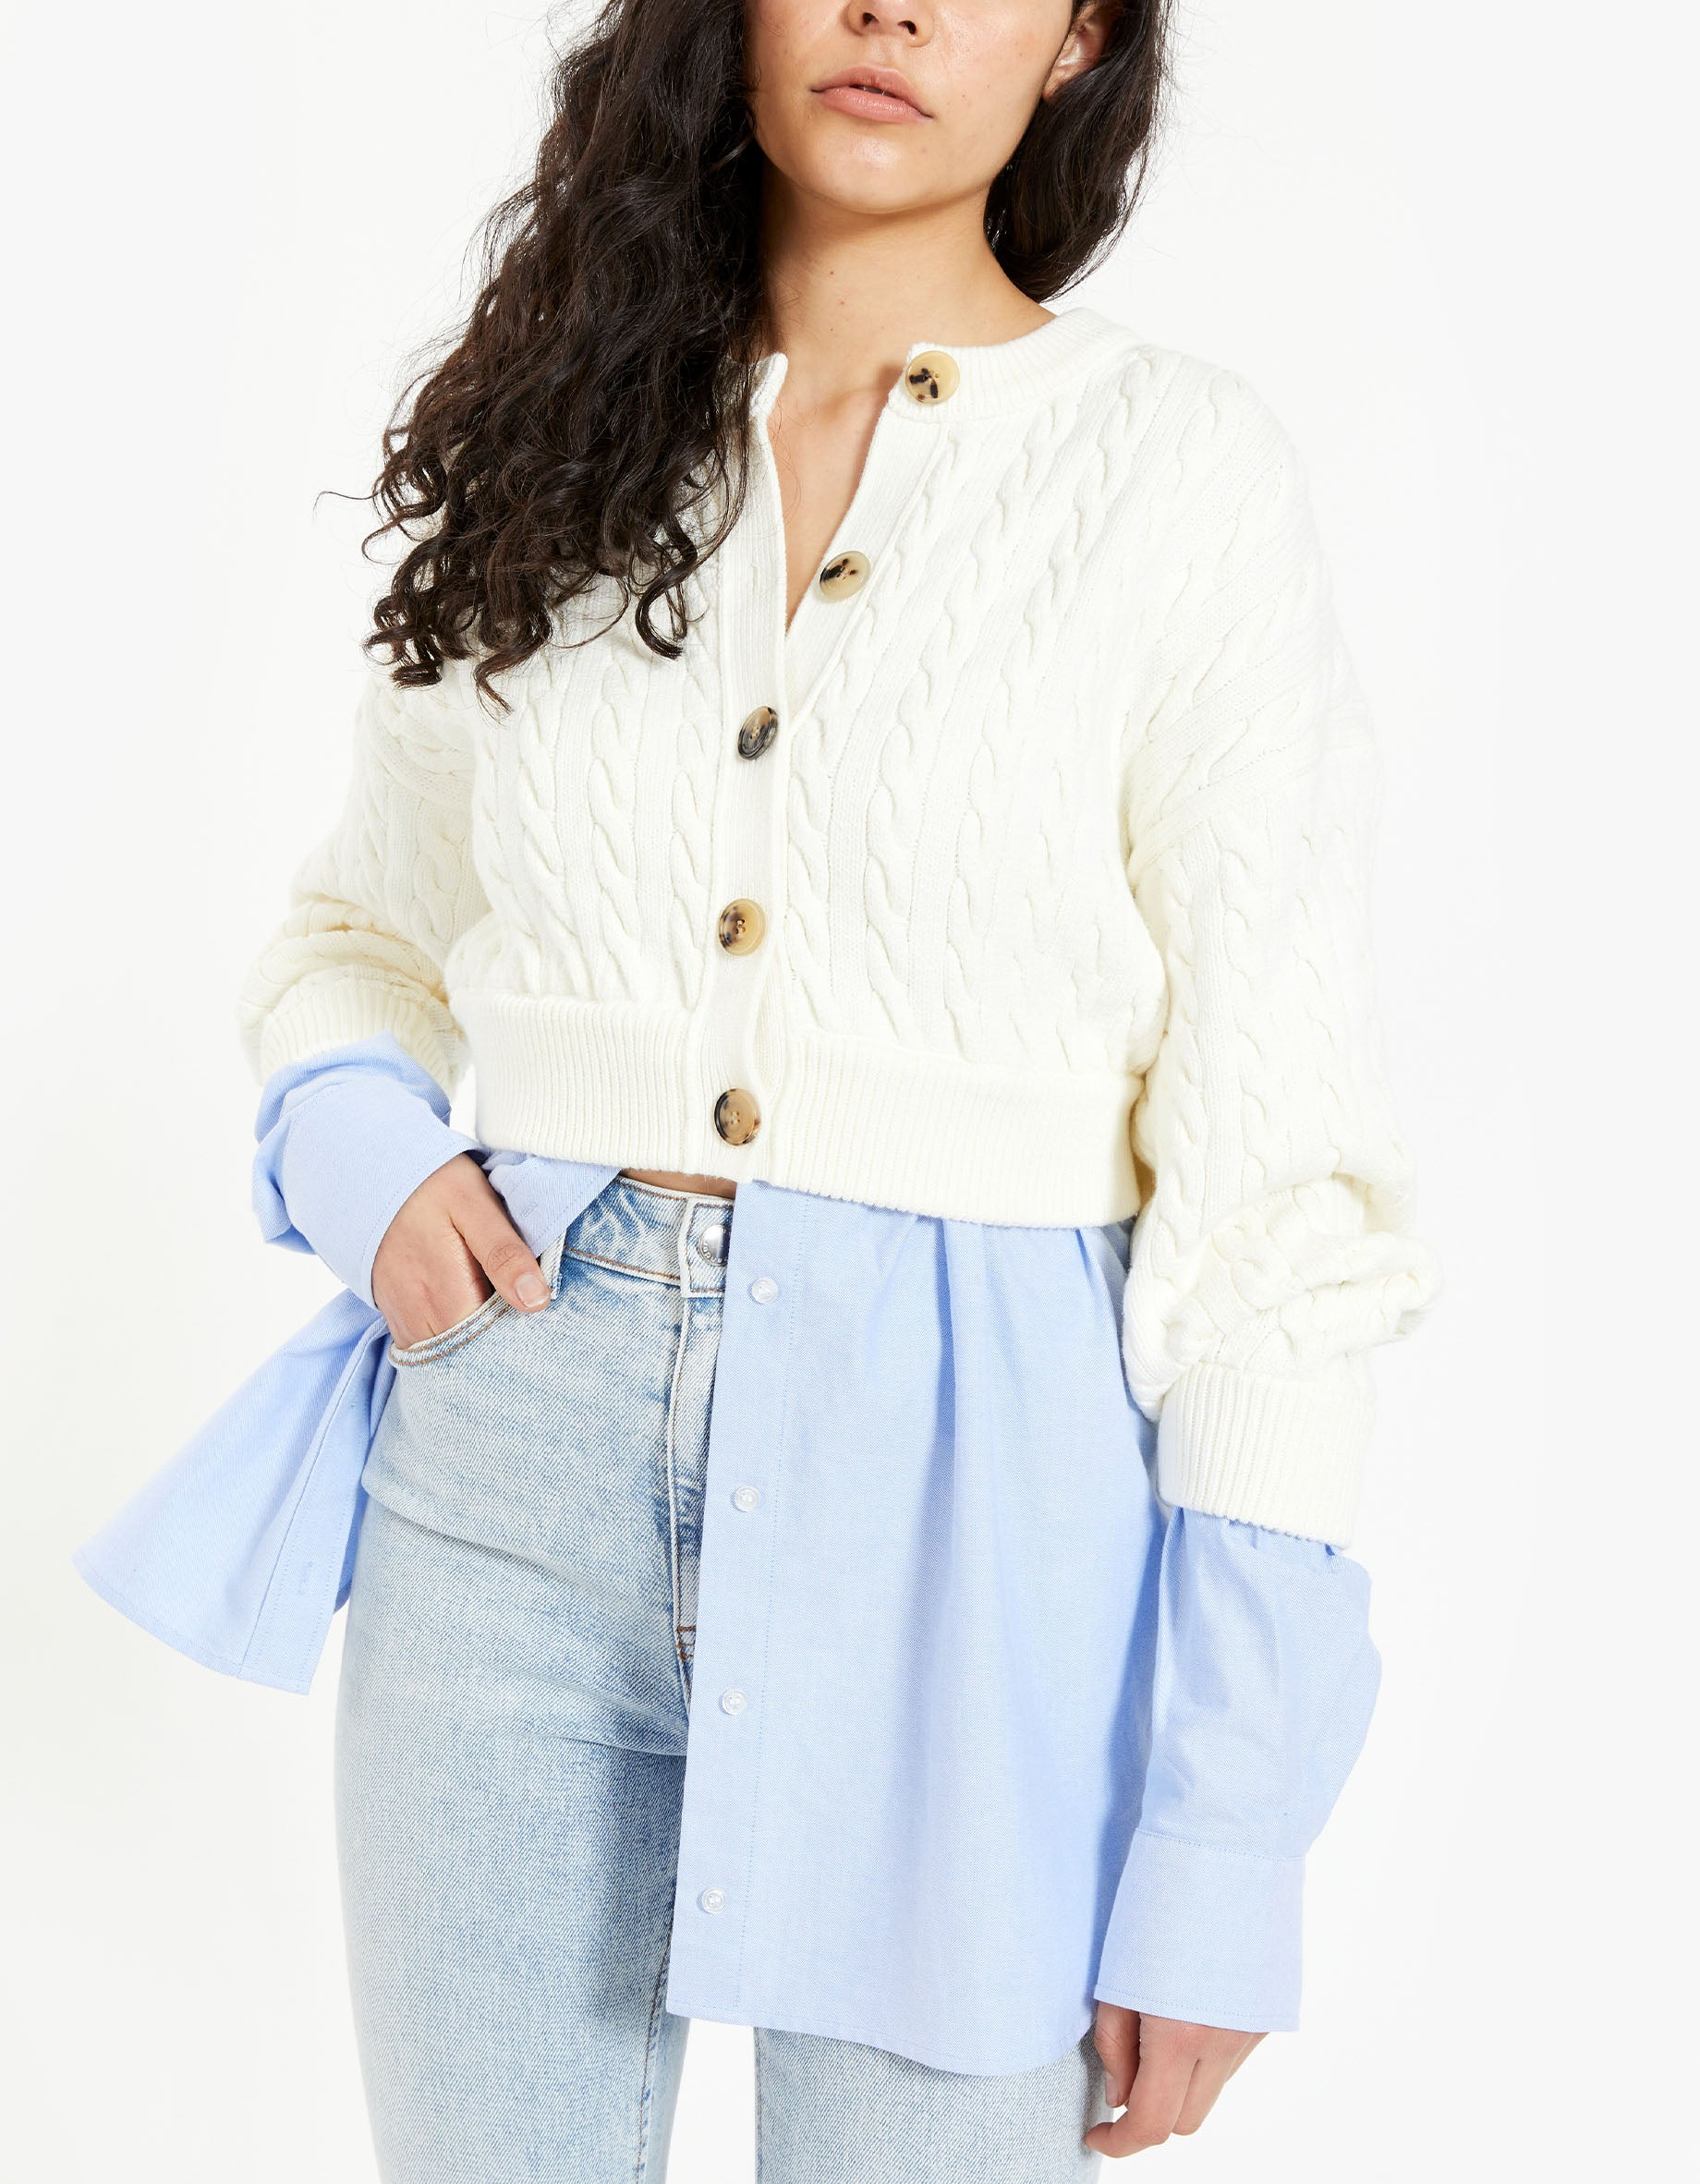 Bi-Layer Cable Cardigan With Oxford Shirting - Ivory/Blue